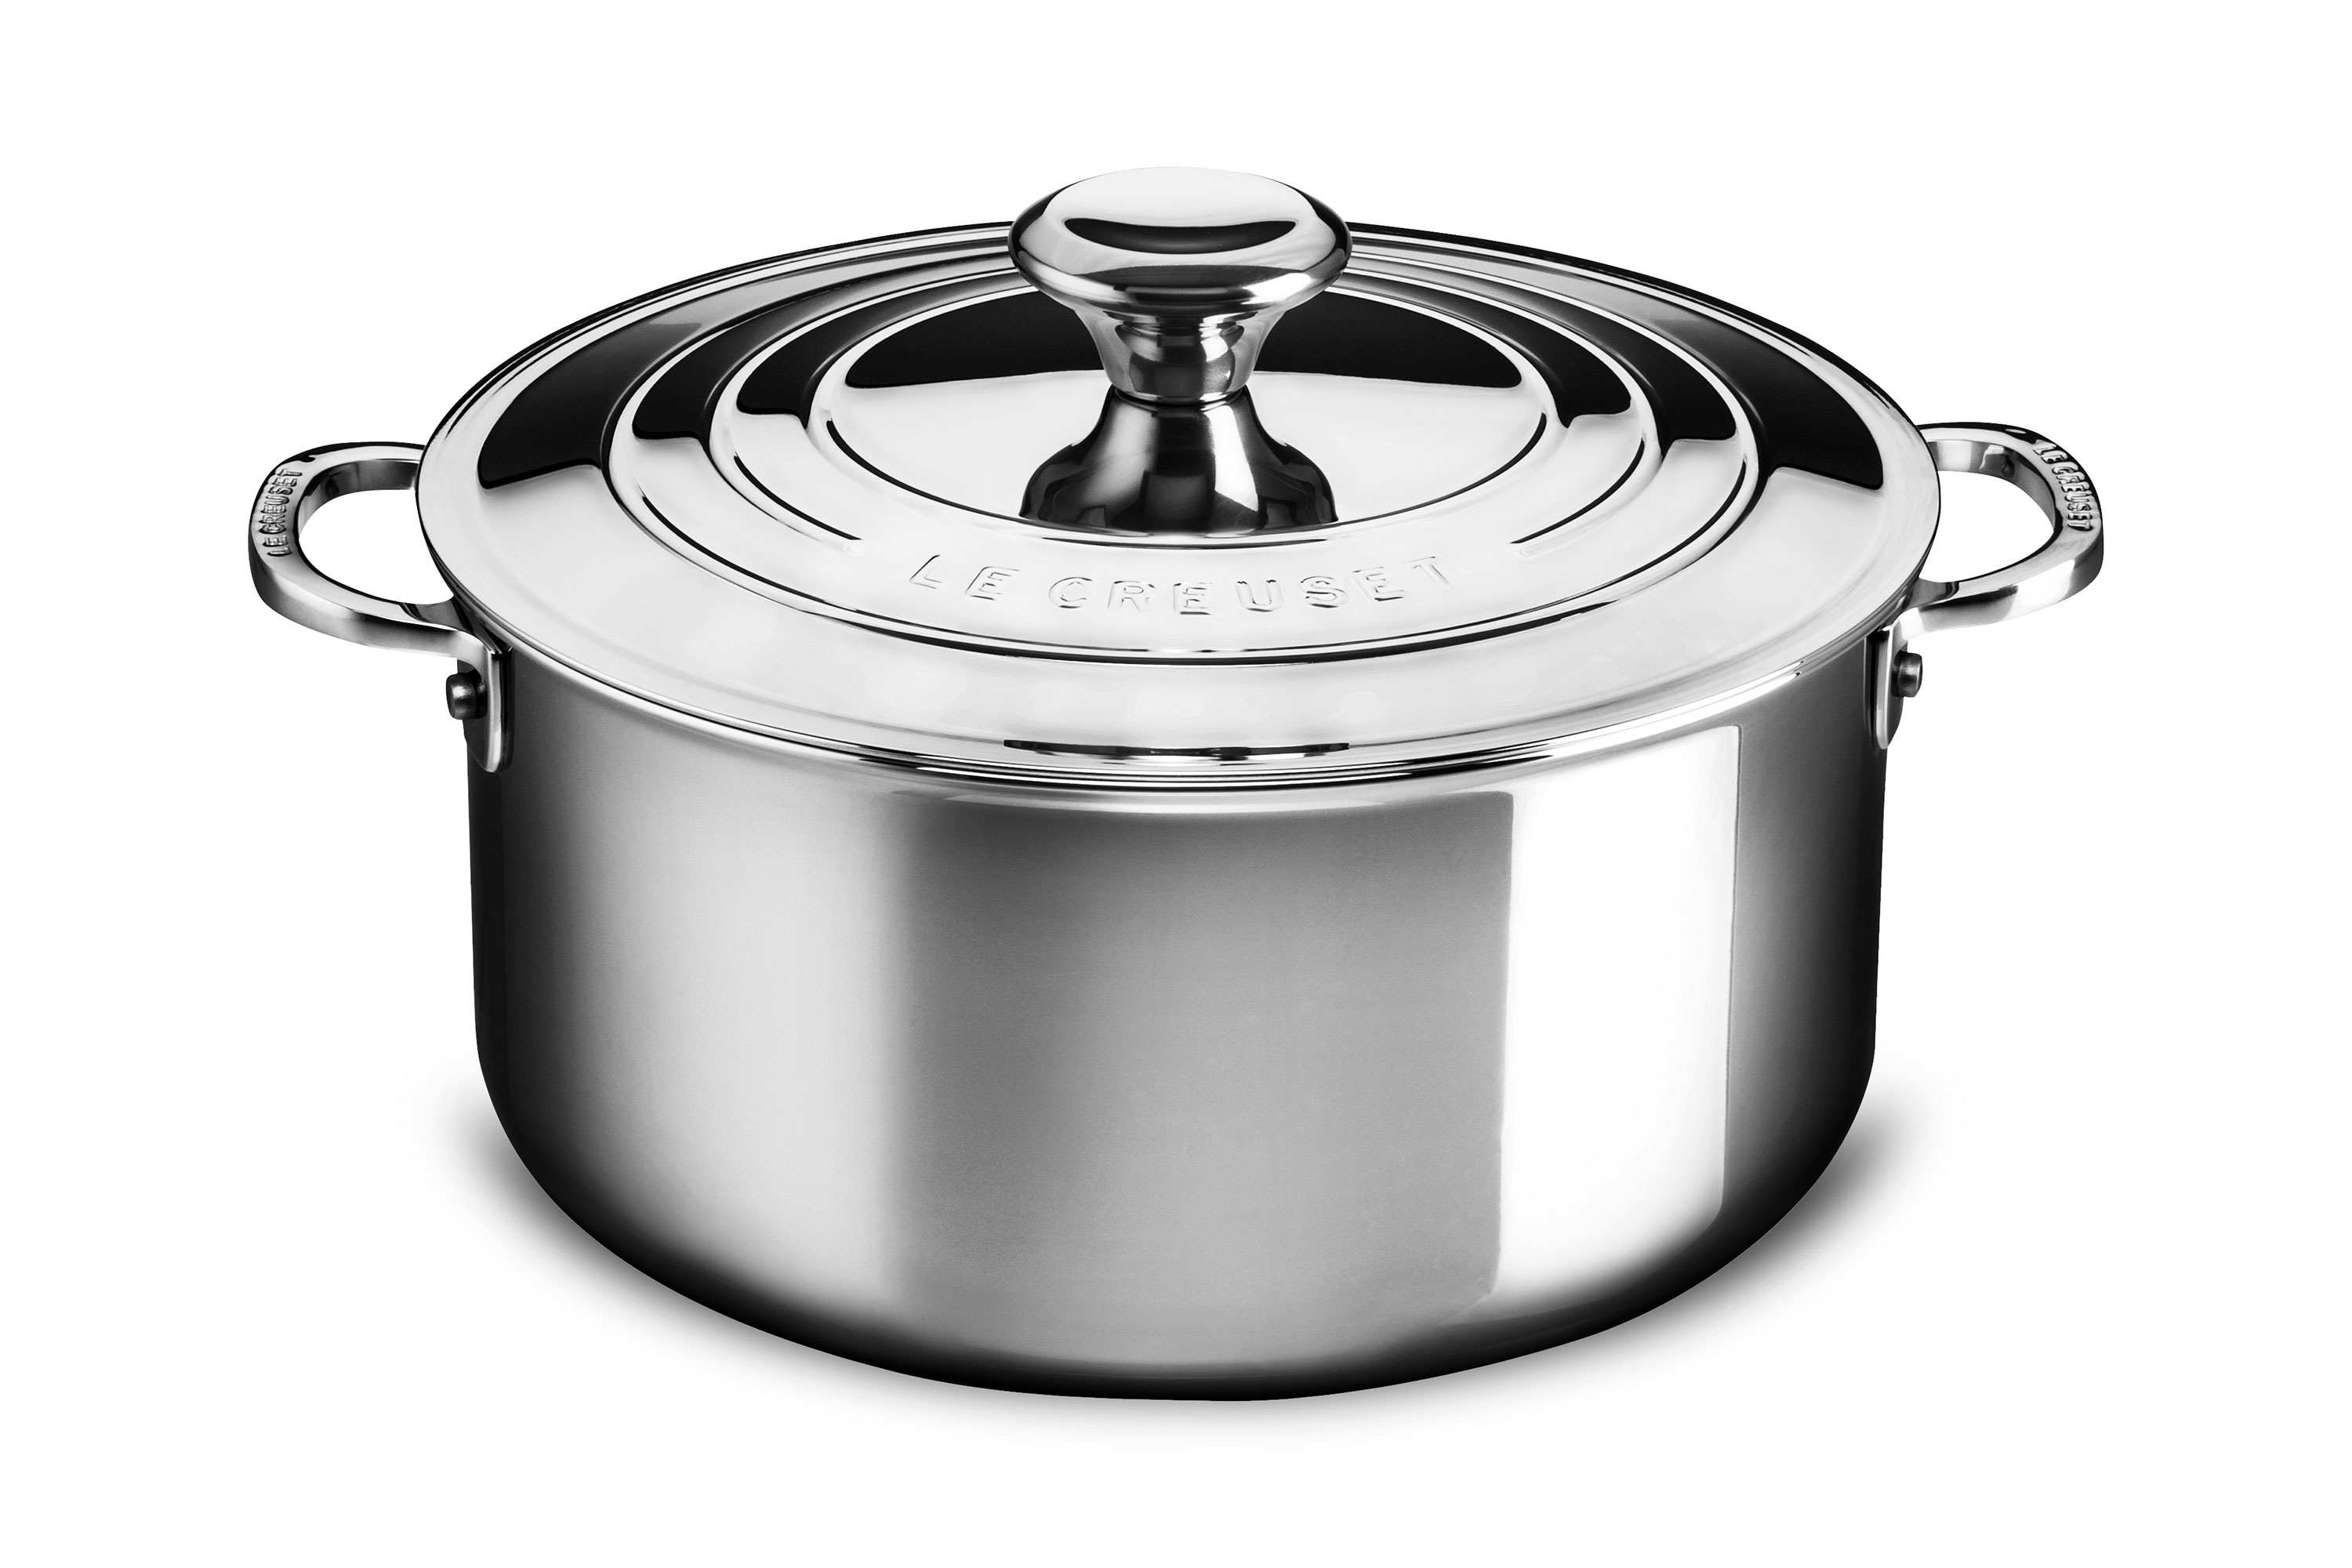 Le Creuset Stainless Steel Dutch Oven, 5.5-quart | Cutlery ...